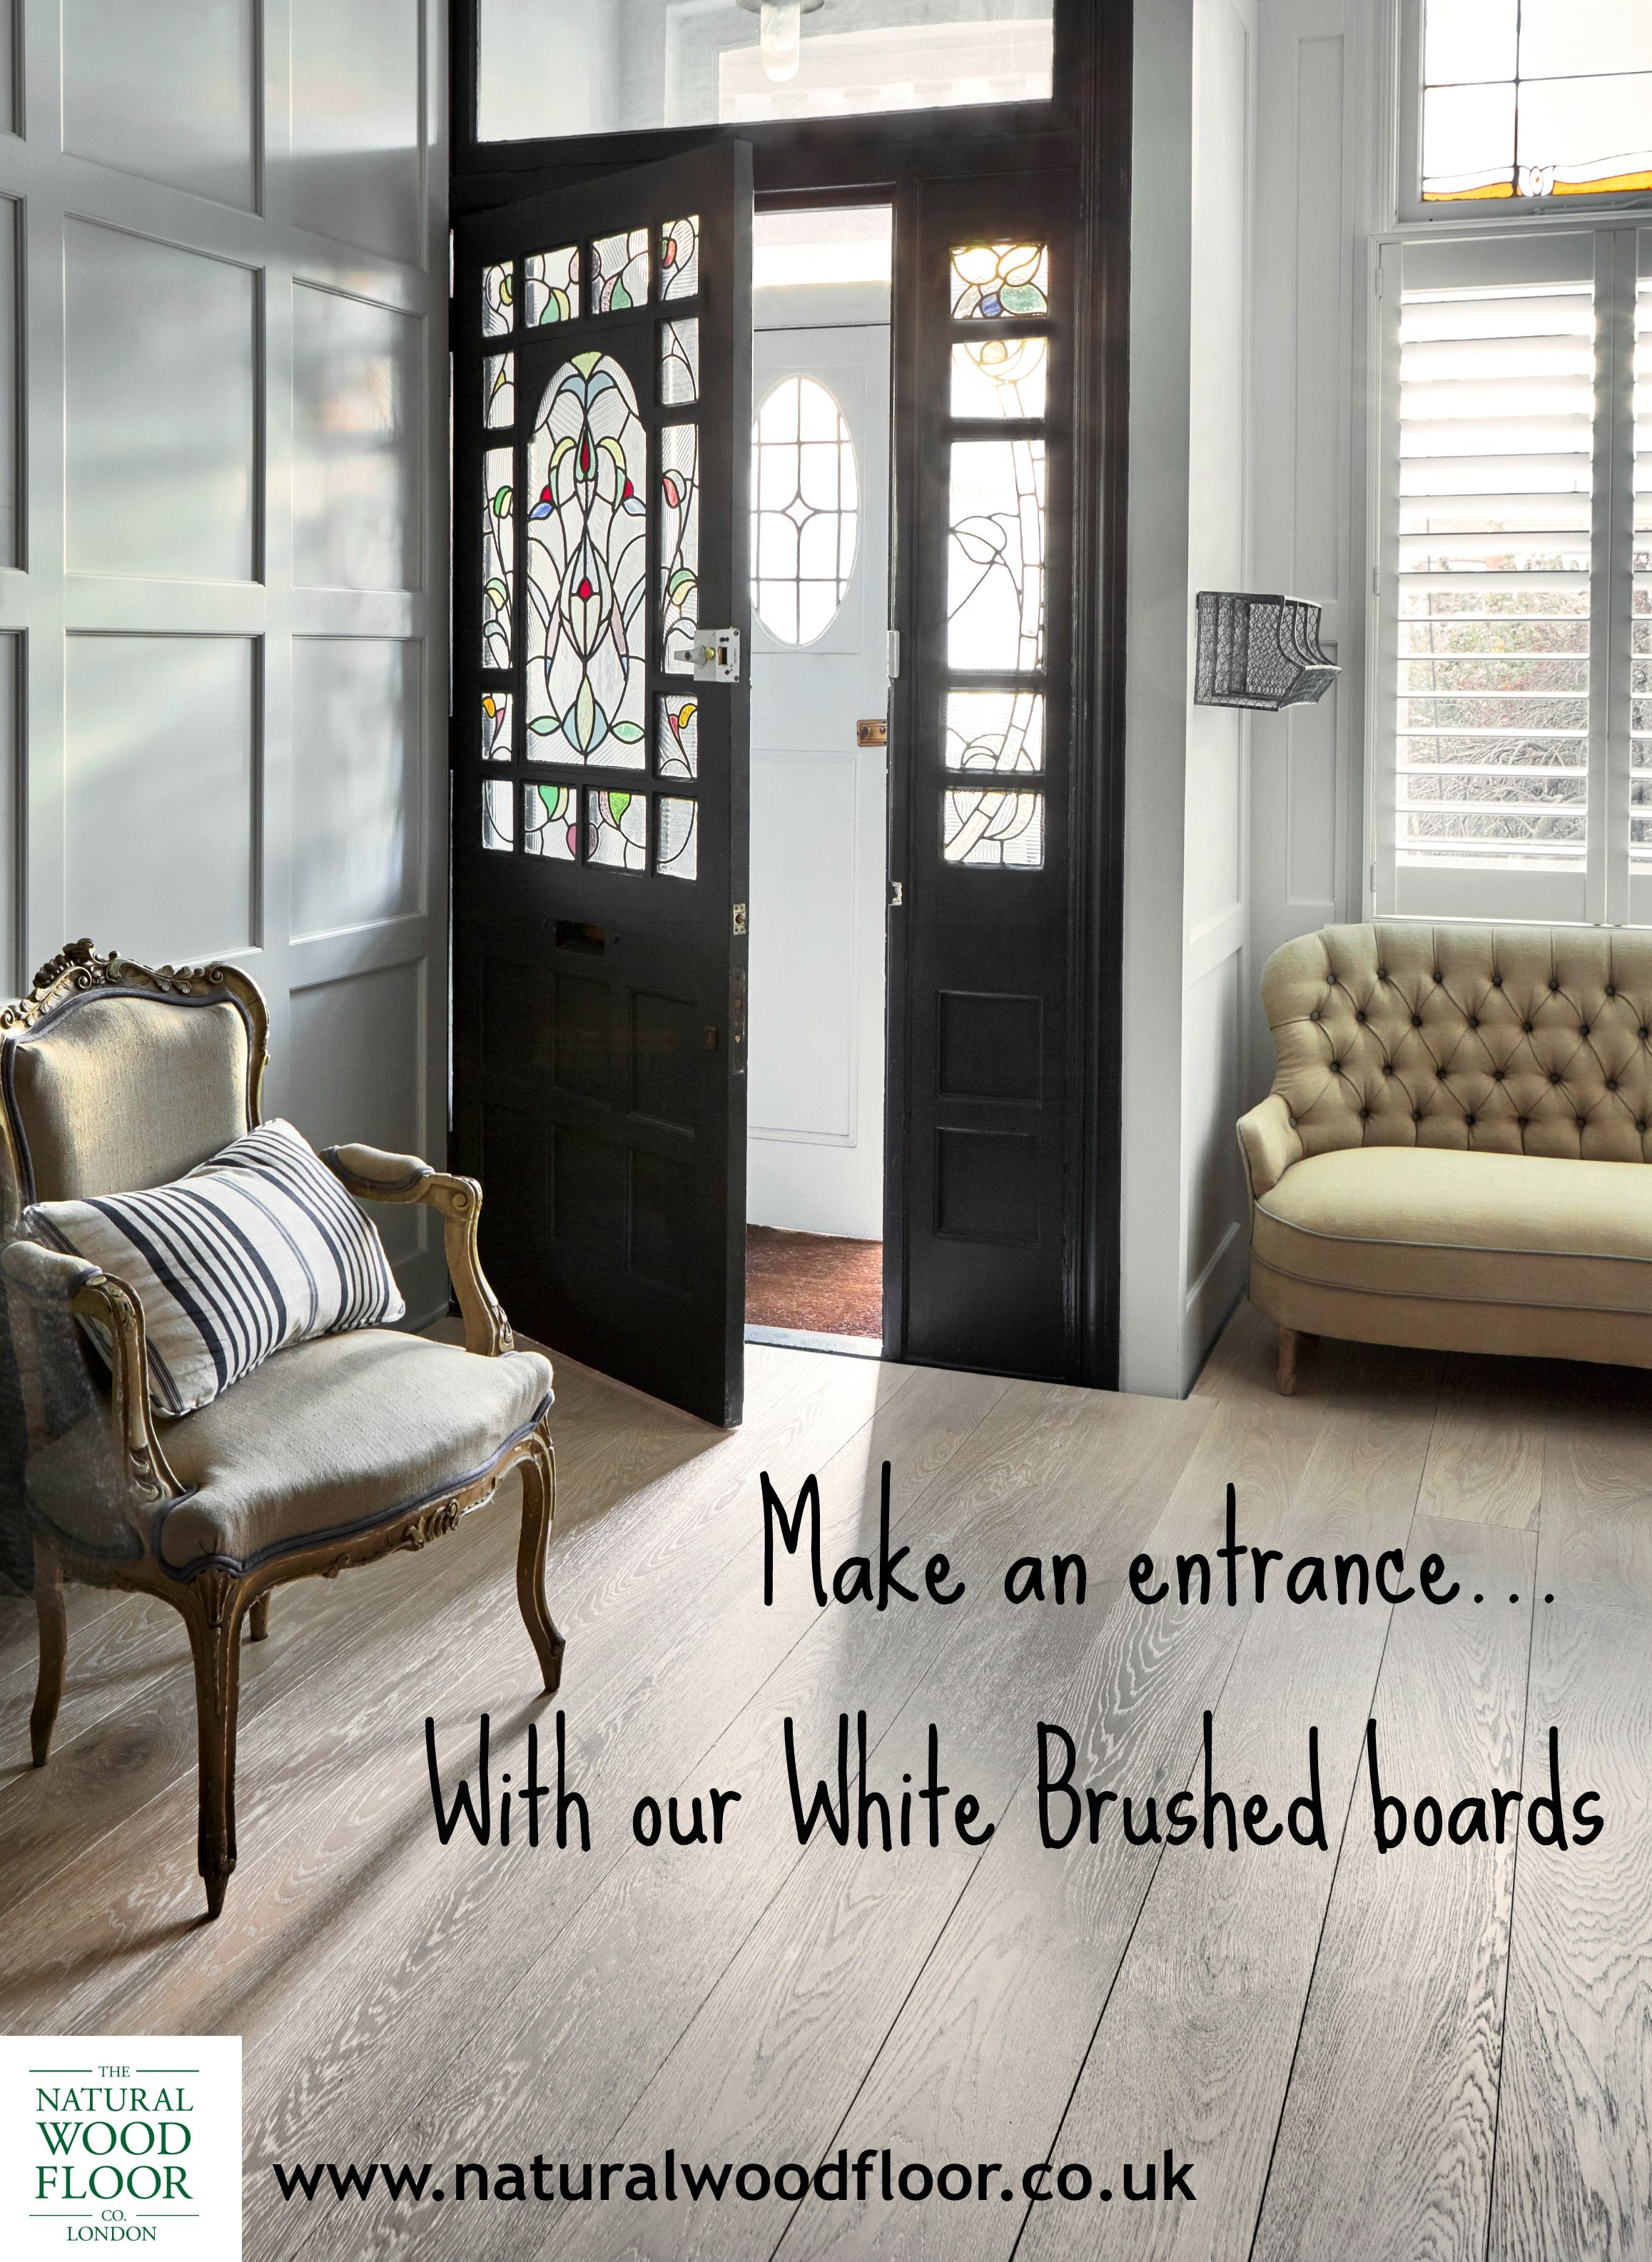 Our White Brushed boards will make a great first